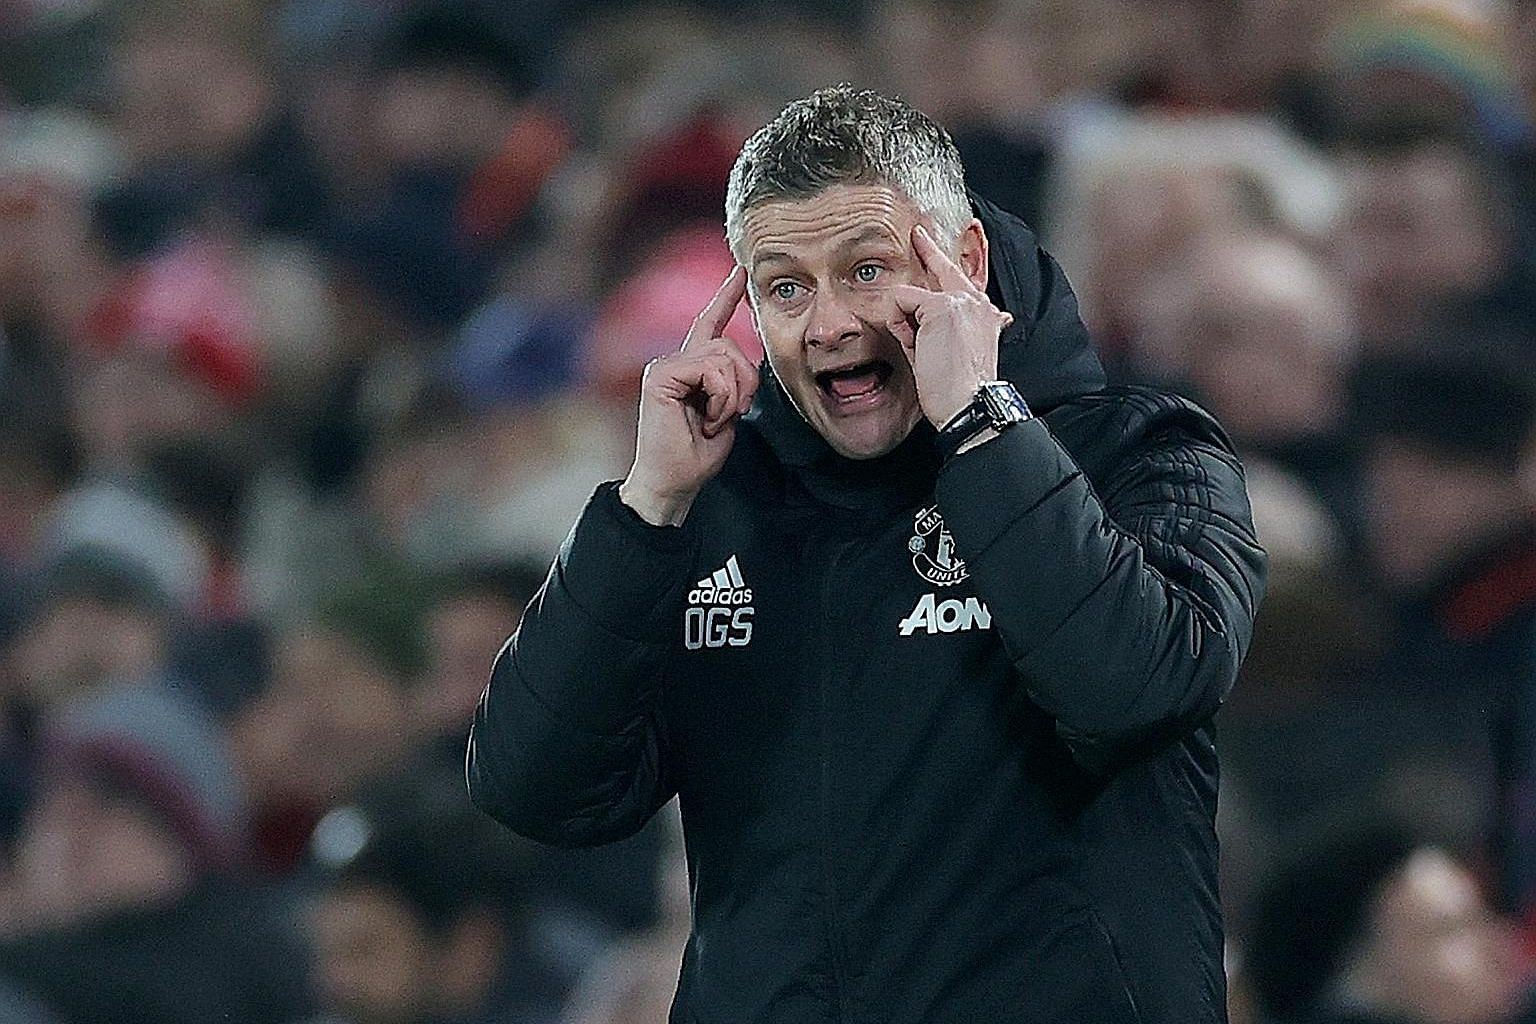 Manchester United manager Ole Gunnar Solskjaer knows that his team will need to be fully focused against rivals Manchester City if they are to make the League Cup final.